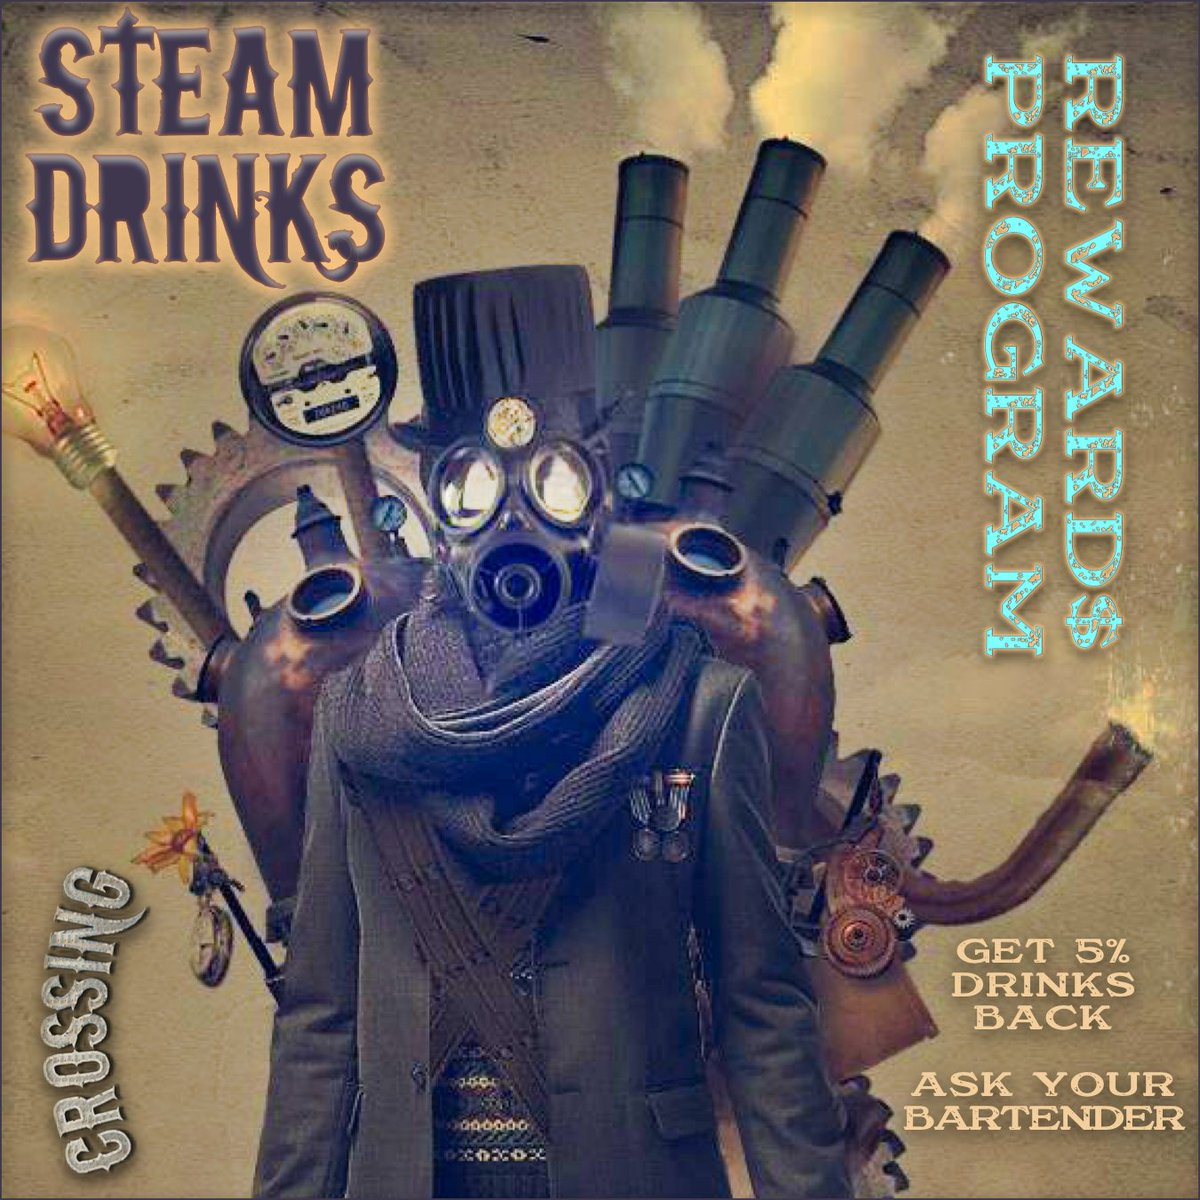 There's a reward program for cocktails? Yes! Here's a program you're sure to love: earn drinks back. That's right, get 5% drinks back on your drinks. Ask your bartender for more info. https://t.co/oJIO3LIseF #Steampunk #VideoBar #Gay #Str8friendly #FrenchQuarter #CrossingNOLA